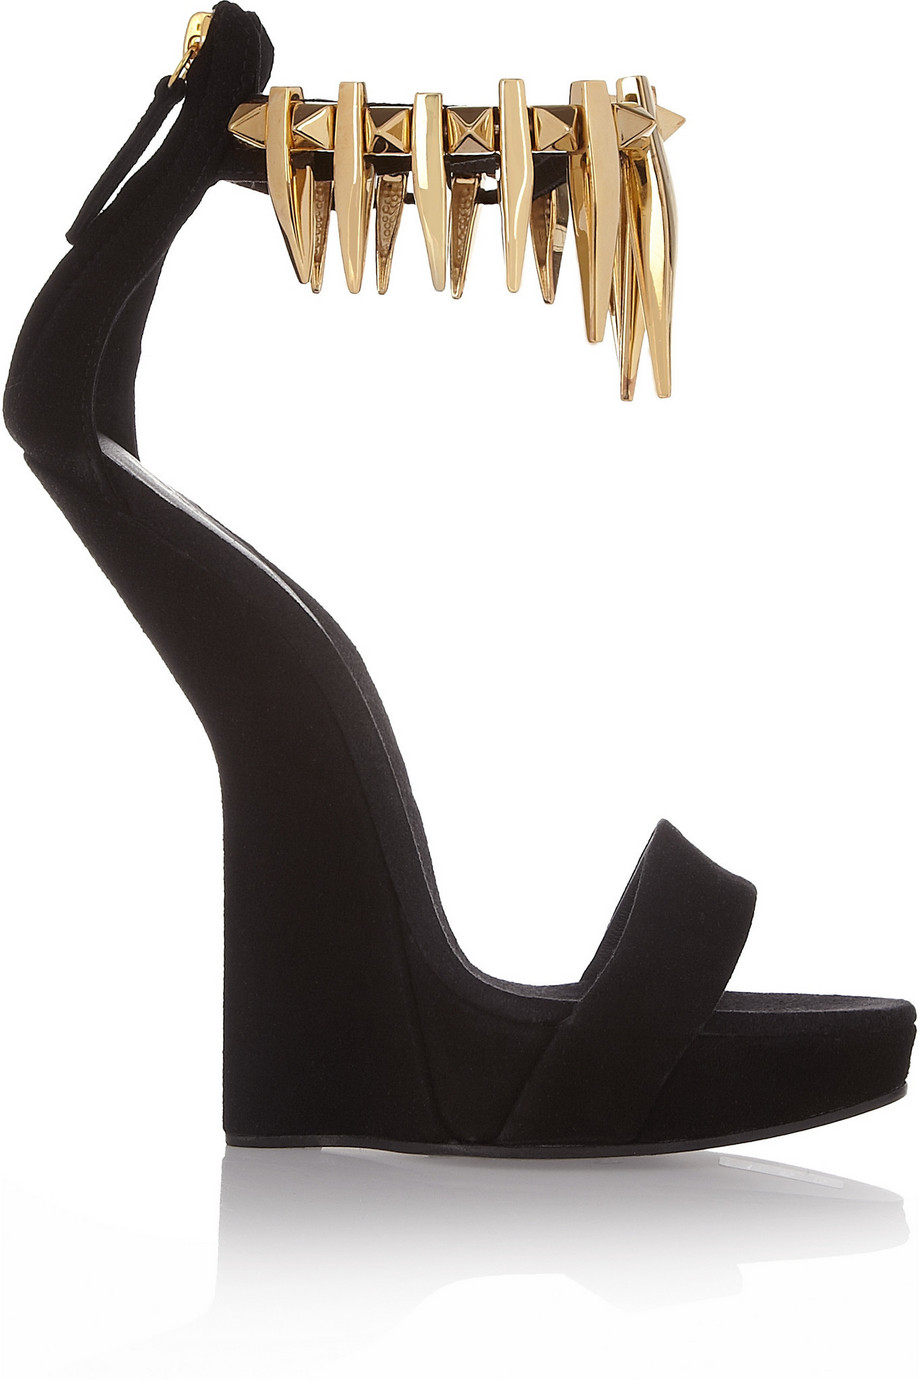 Spiked Giuseppe Zanotti Wedge Suede Sandals CxorBde